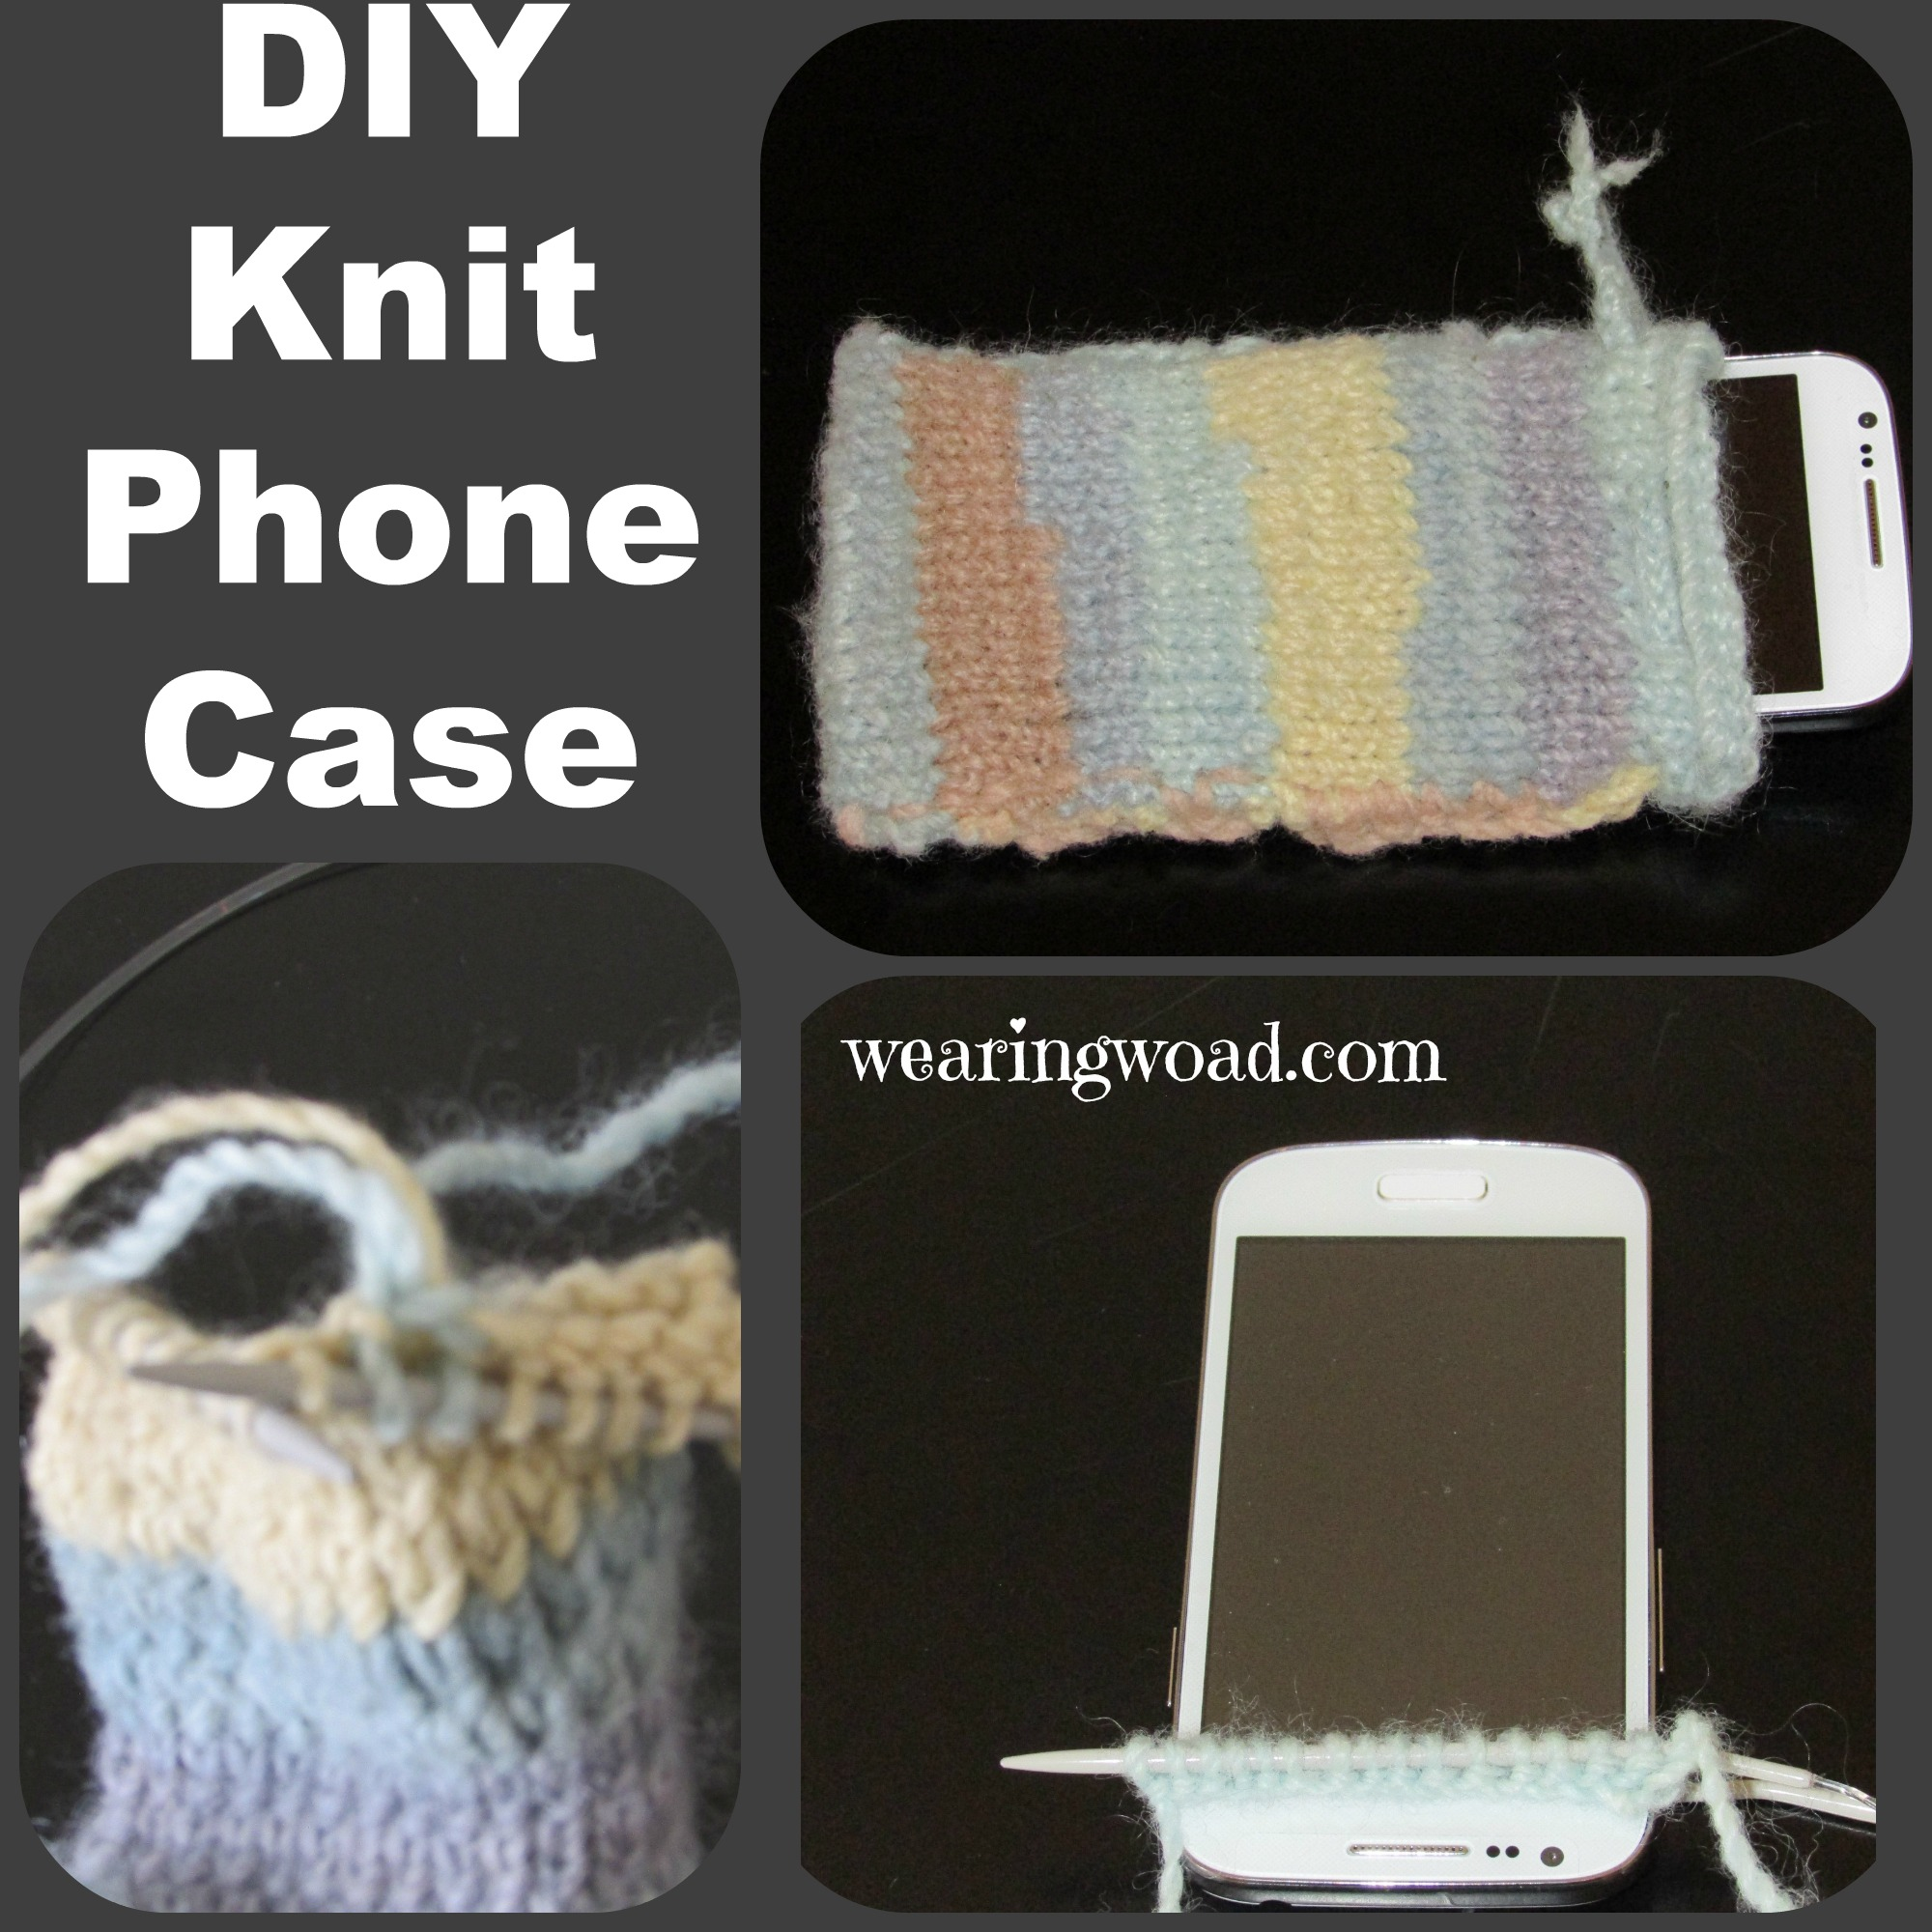 Make your own knitted phone case, or a bunch if you want to accessorize your phone completely with your own style.